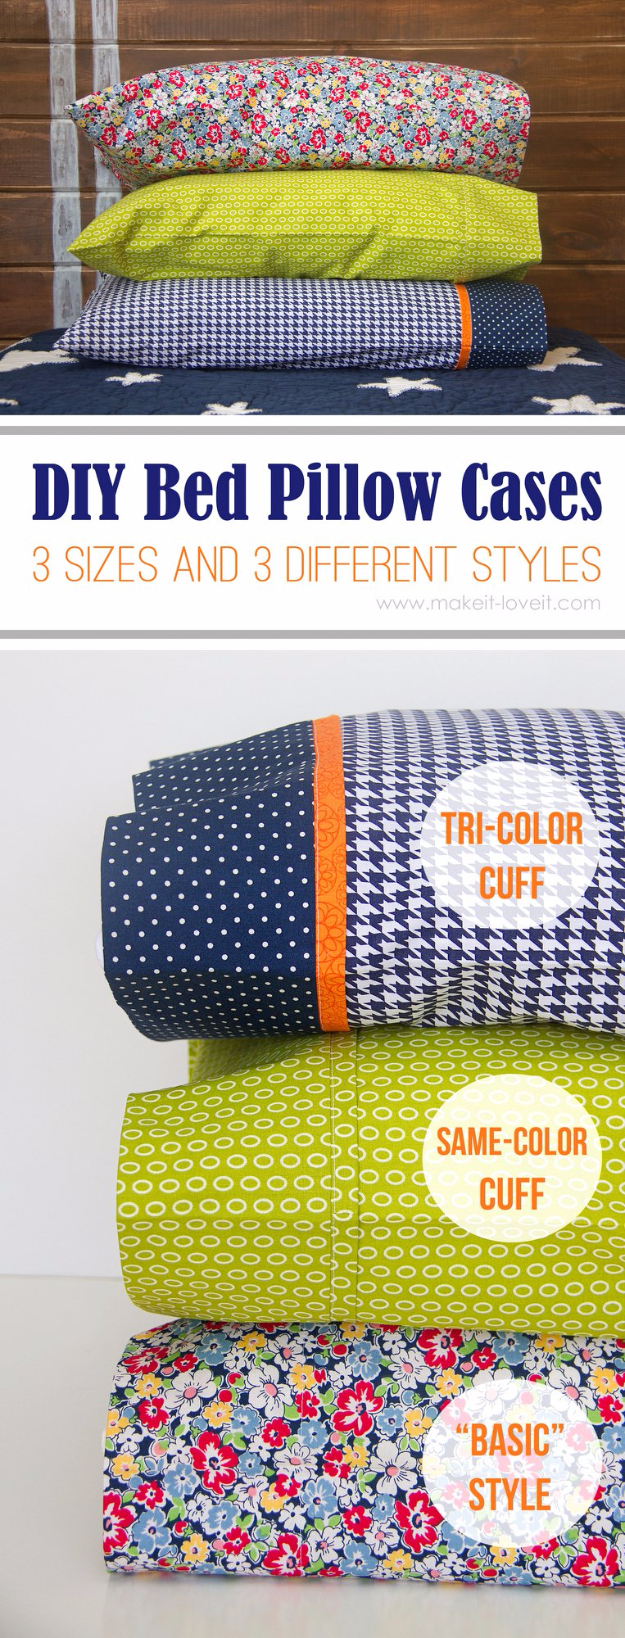 DIY Pillowcases - DIY Bed Pillow Cases - Easy Sewing Projects for Pillows - Bedroom and Home Decor Ideas - Sewing Patterns and Tutorials - No Sew Ideas - DIY Projects and Crafts for Women http://diyjoy.com/sewing-projects-diy-pillowcases